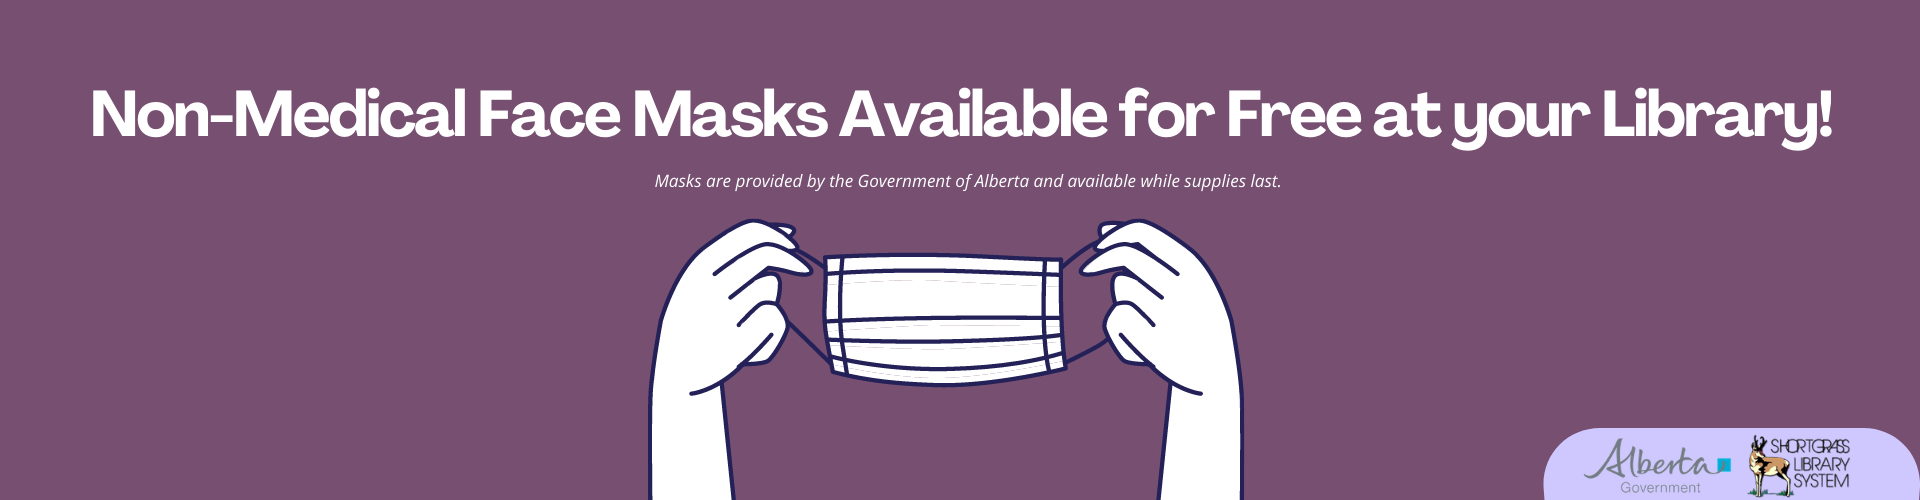 free-masks-at-MHPL